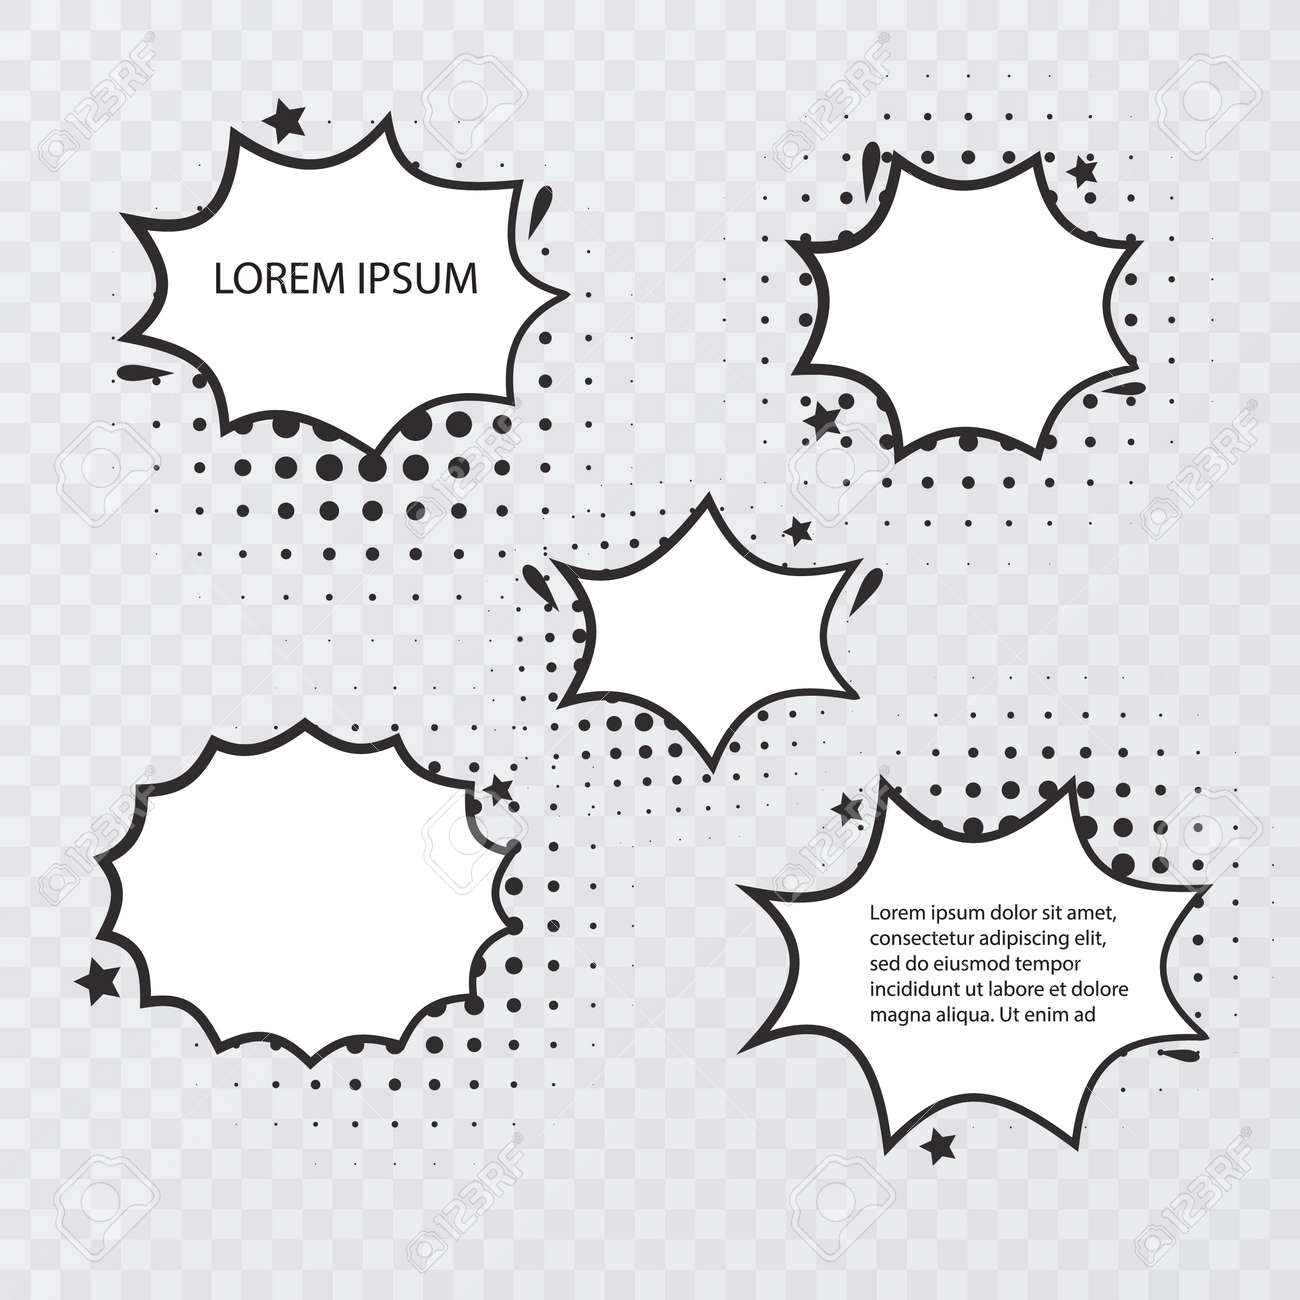 Retro empty comic bubbles and elements set with black halftone shadows on transparent background. Vintage design or pop art style, Vector format - 171607891